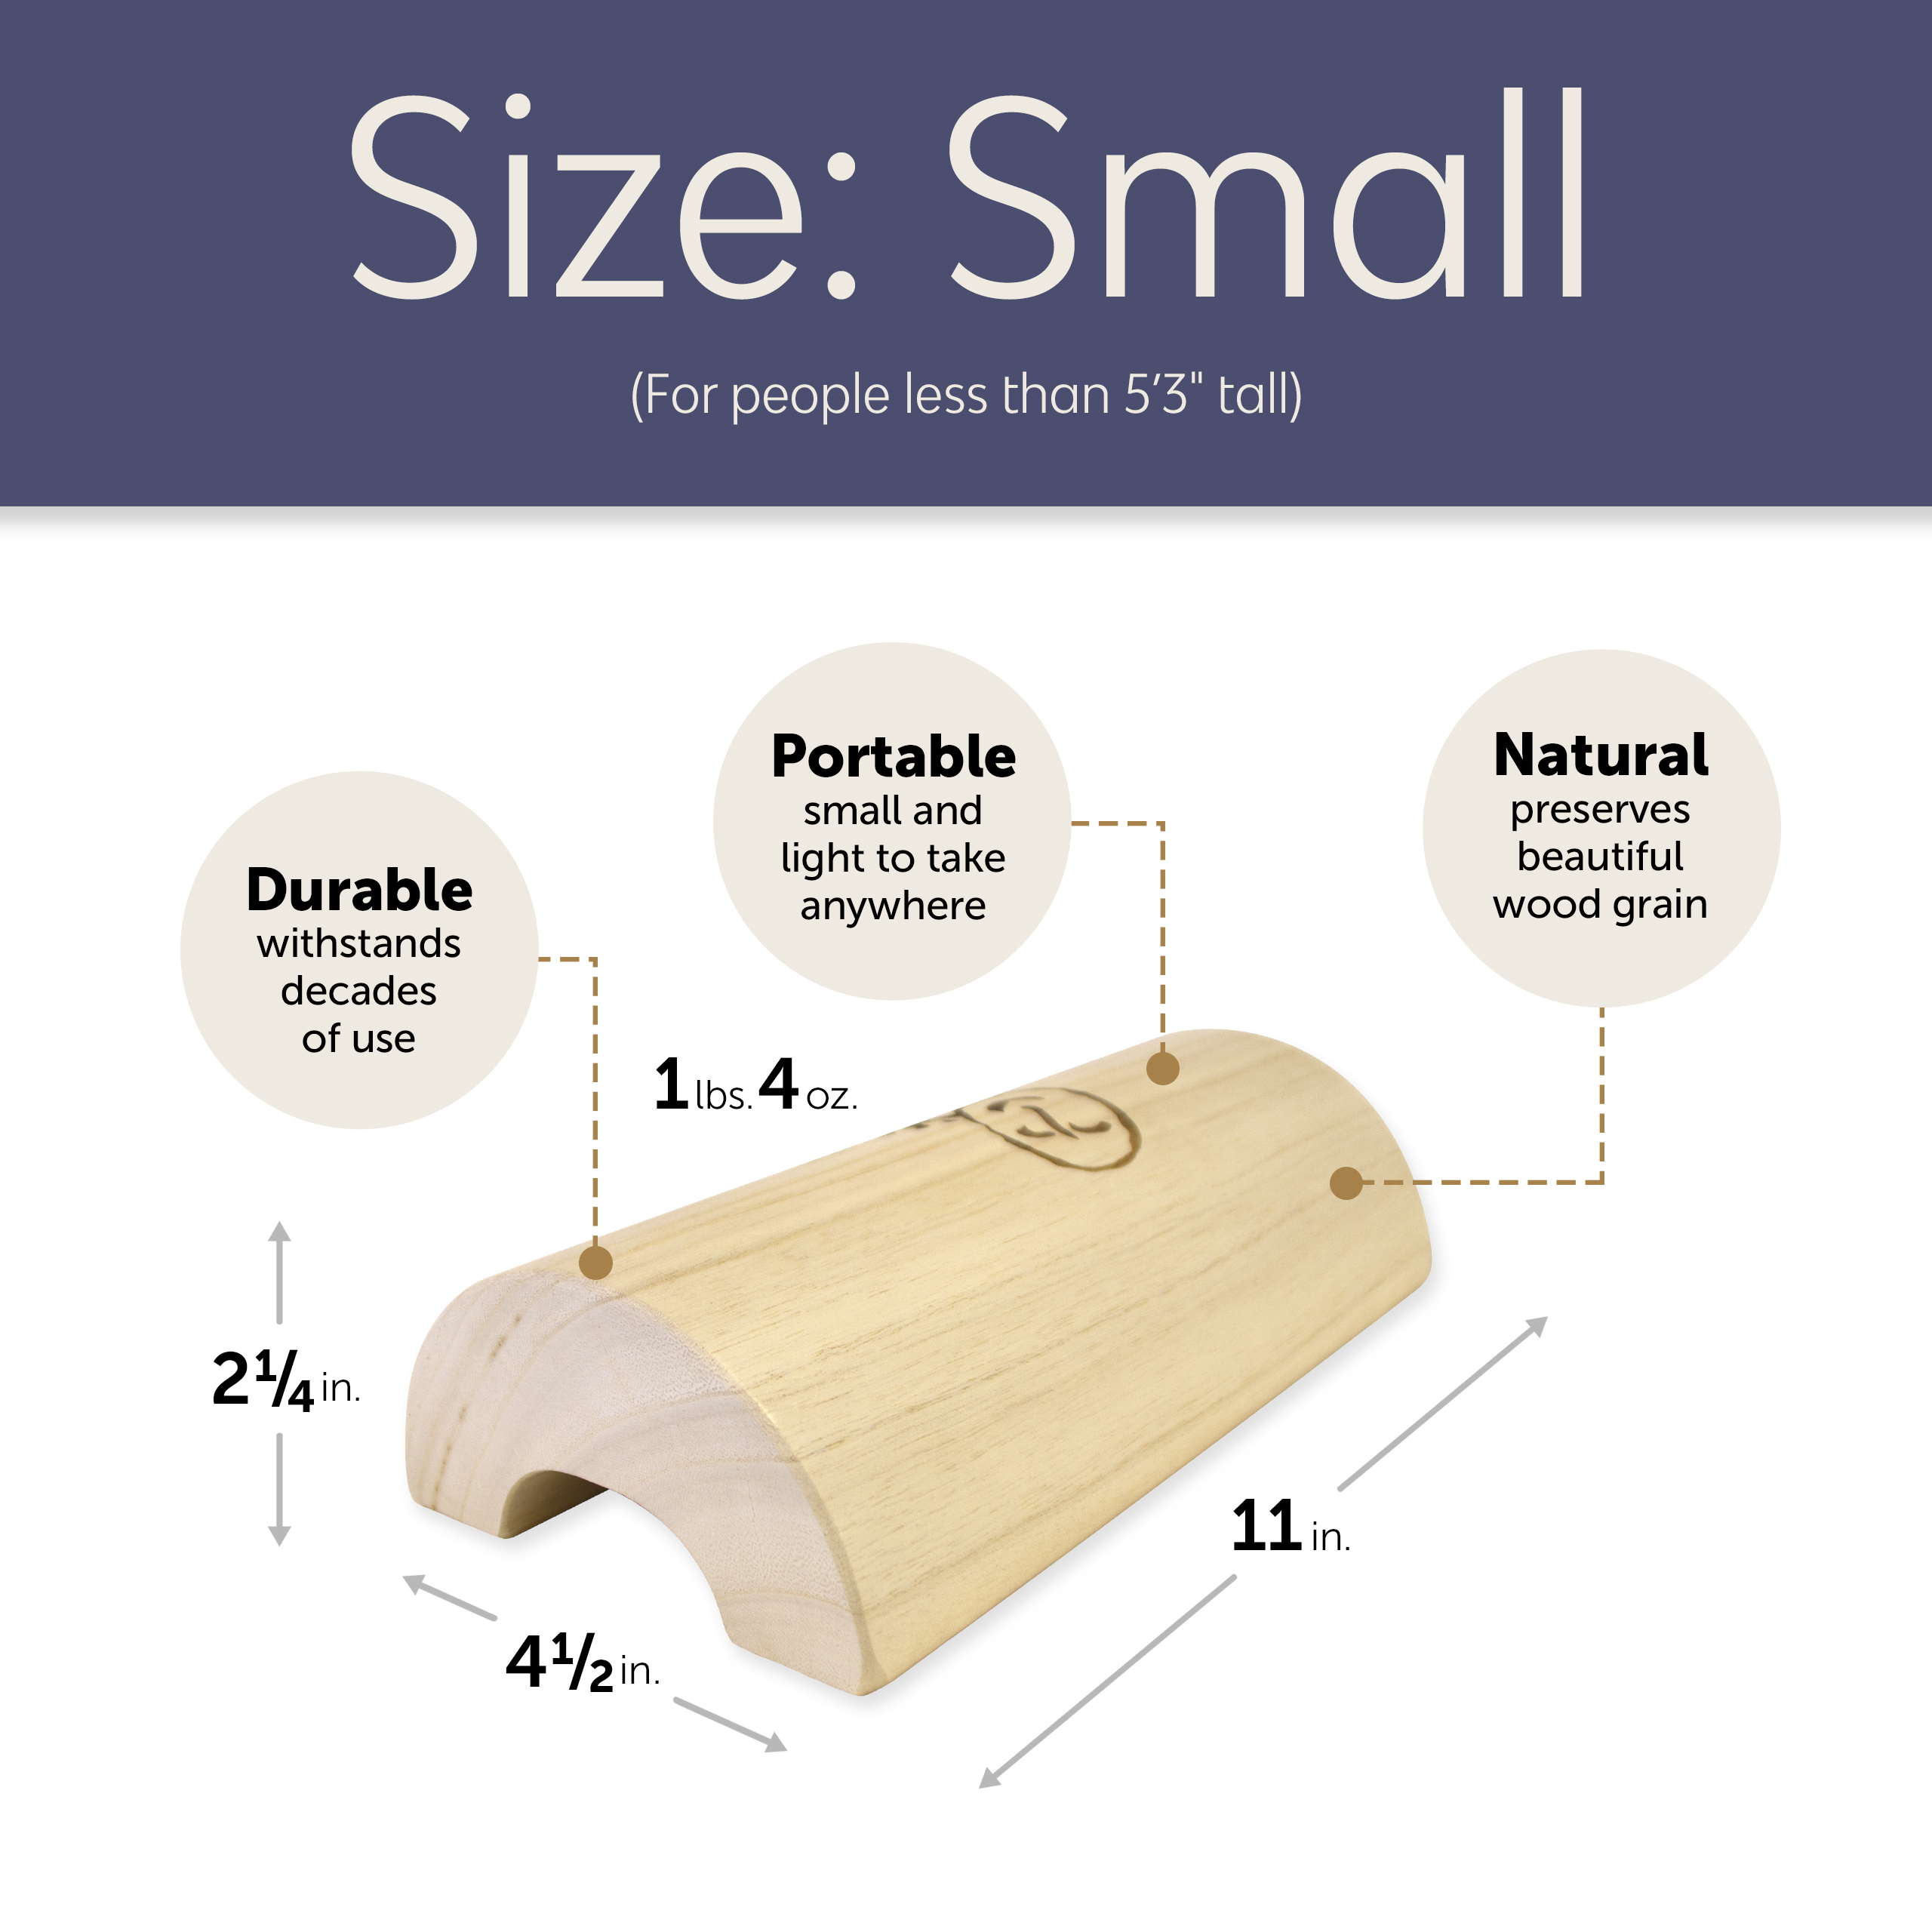 hsp wooden pillow for stiff neck shoulder pain relief and relaxation small shorter than 5 3